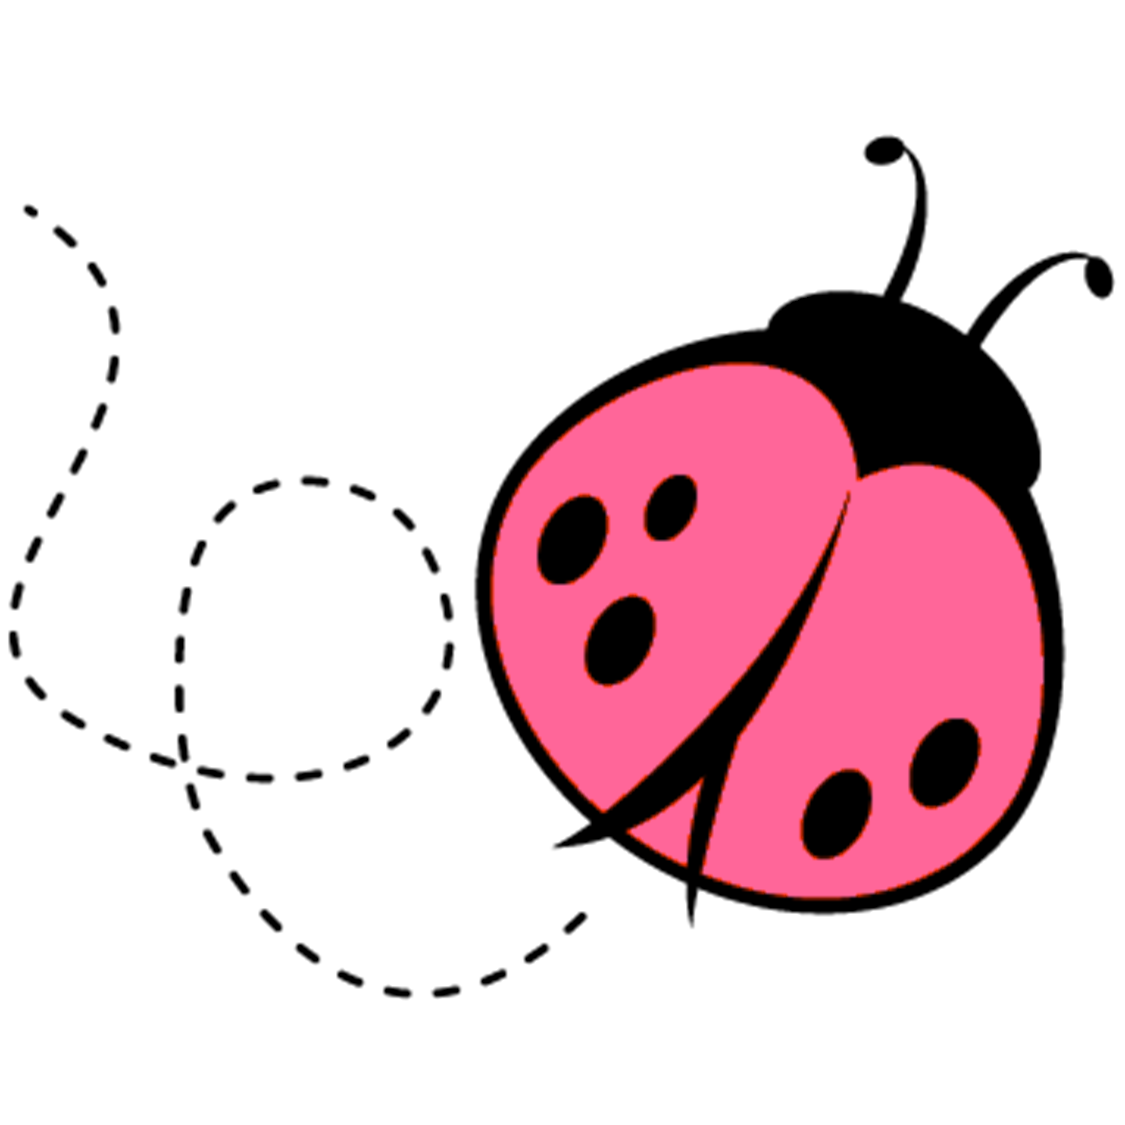 ... addition Printable Adult Coloring Pages additionally Pink Ladybug Clip